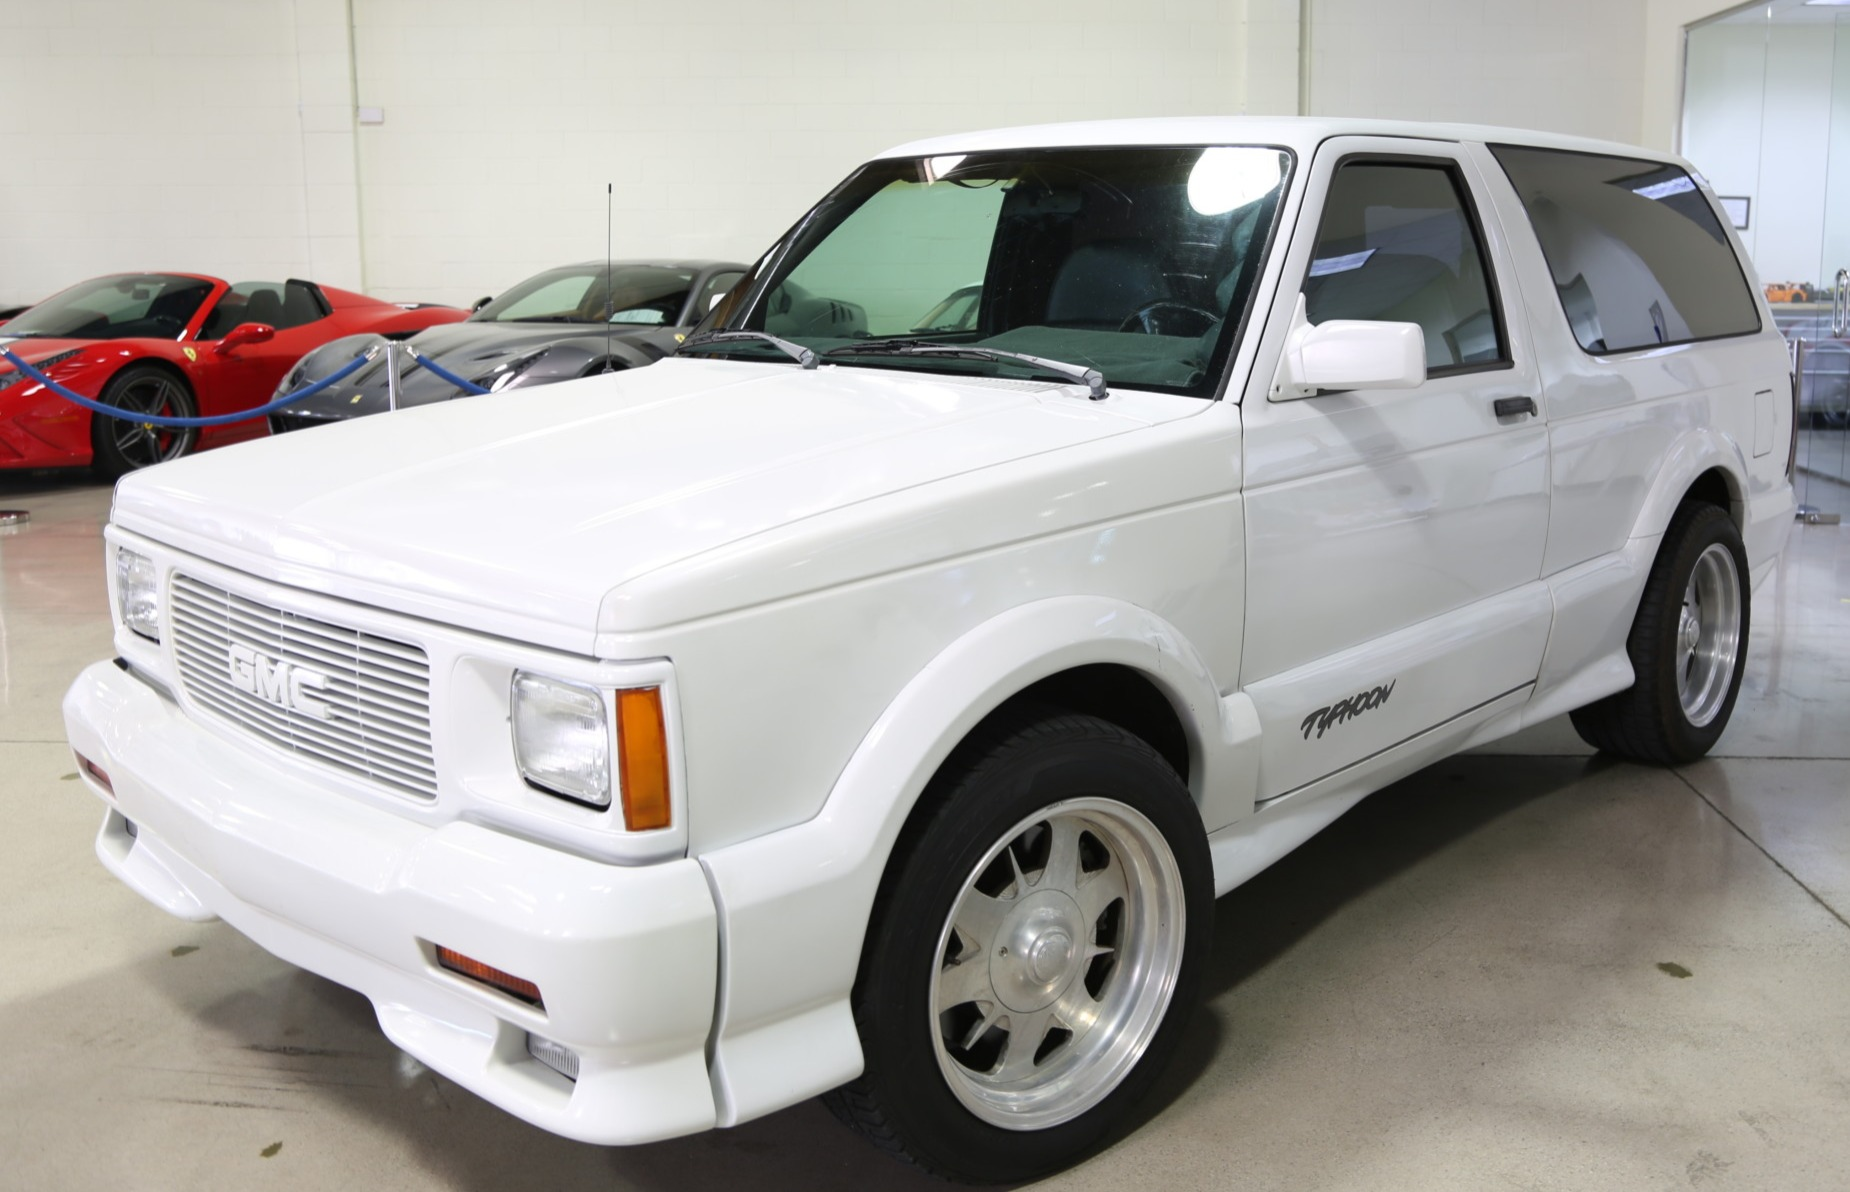 hight resolution of 1993 gmc typhoon for sale on bat auctions sold for 8 988 on april 9 2019 lot 17 772 bring a trailer